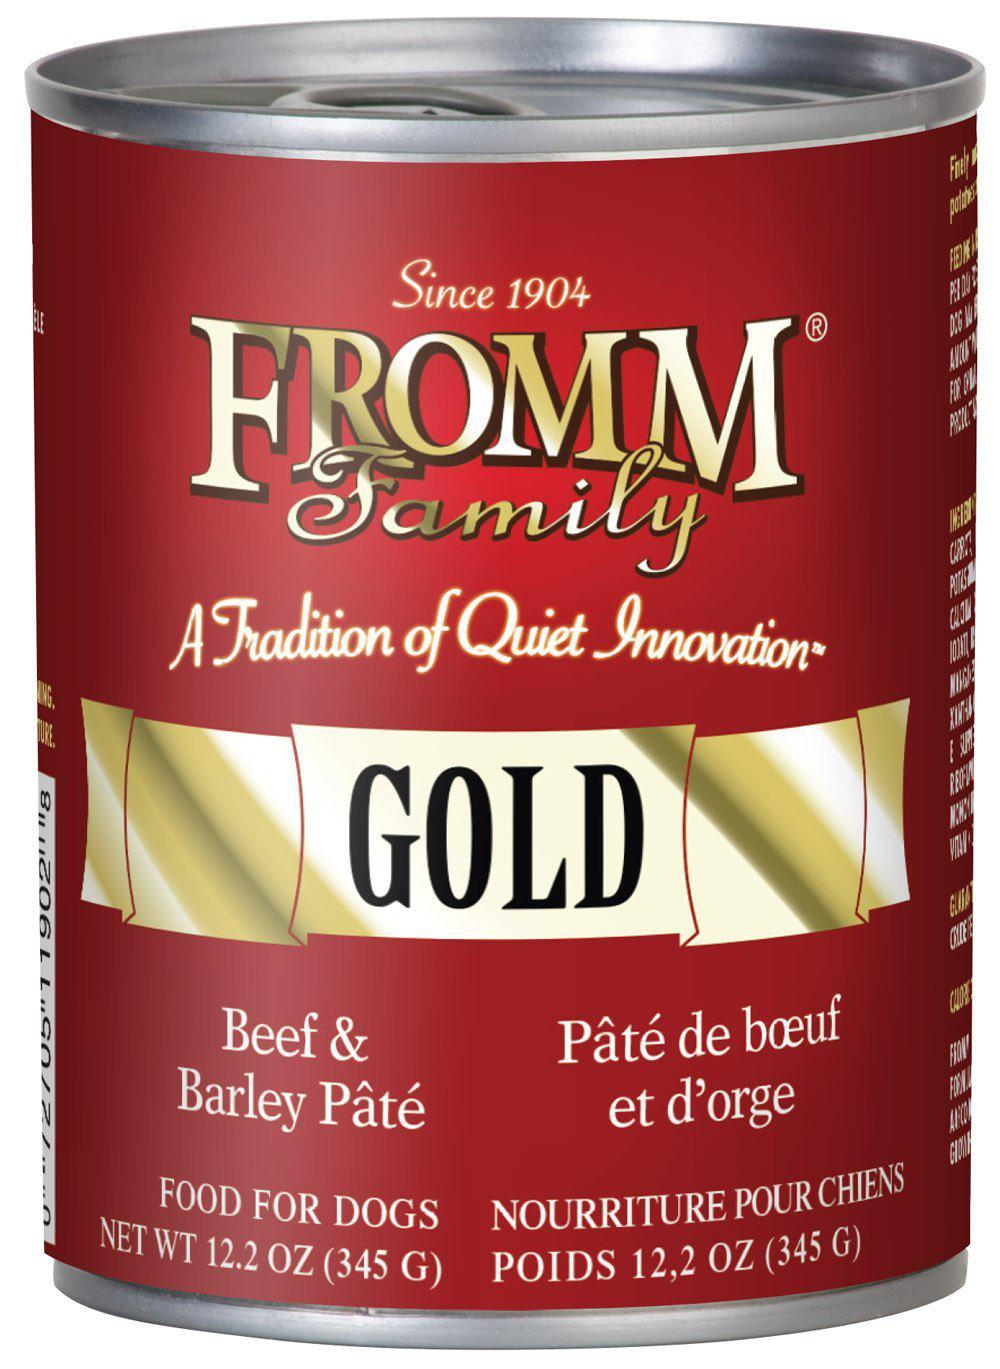 Fromm Gold Beef & Barley Pâté Wet Dog Food-Le Pup Pet Supplies and Grooming